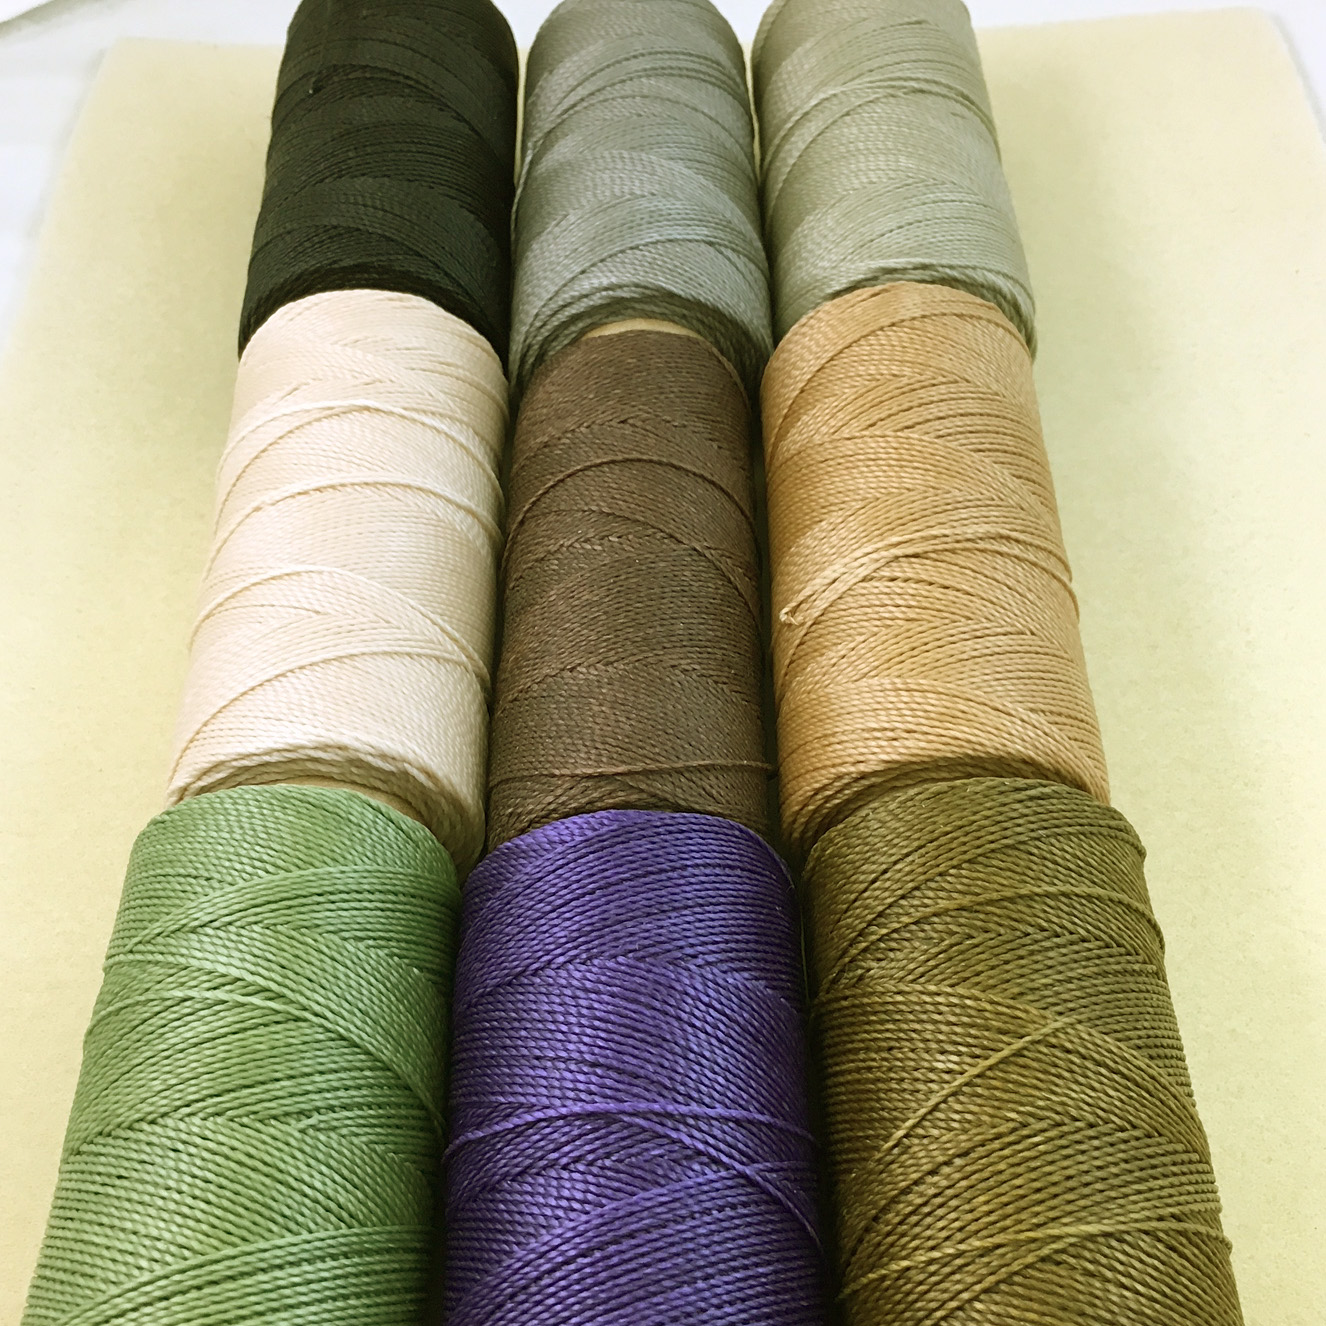 Amazing Waxed Knotting Cord - More Colors - beadstrands com